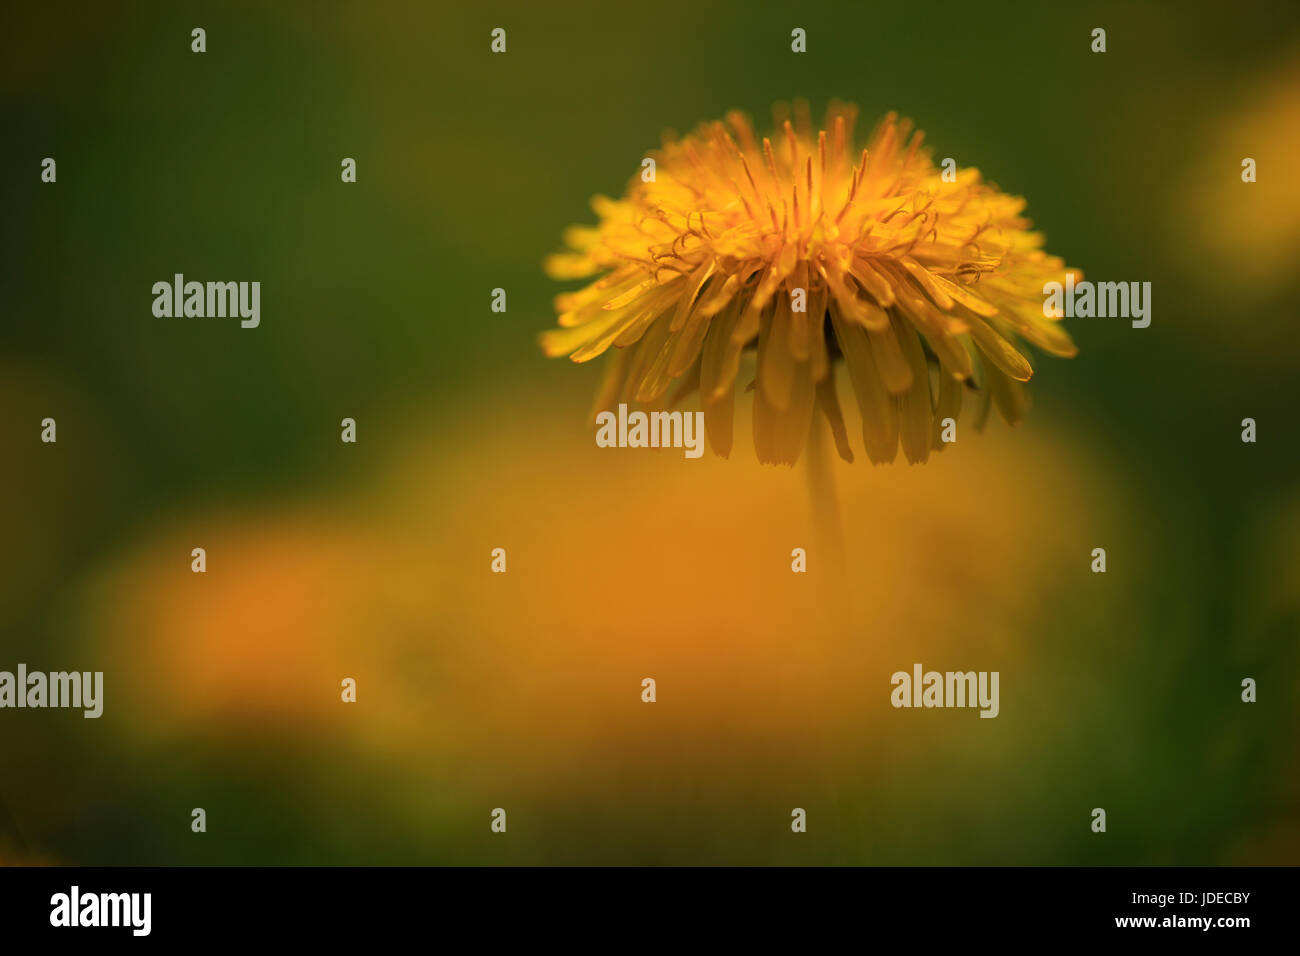 Close up of an orange flower in a green field - Stock Image